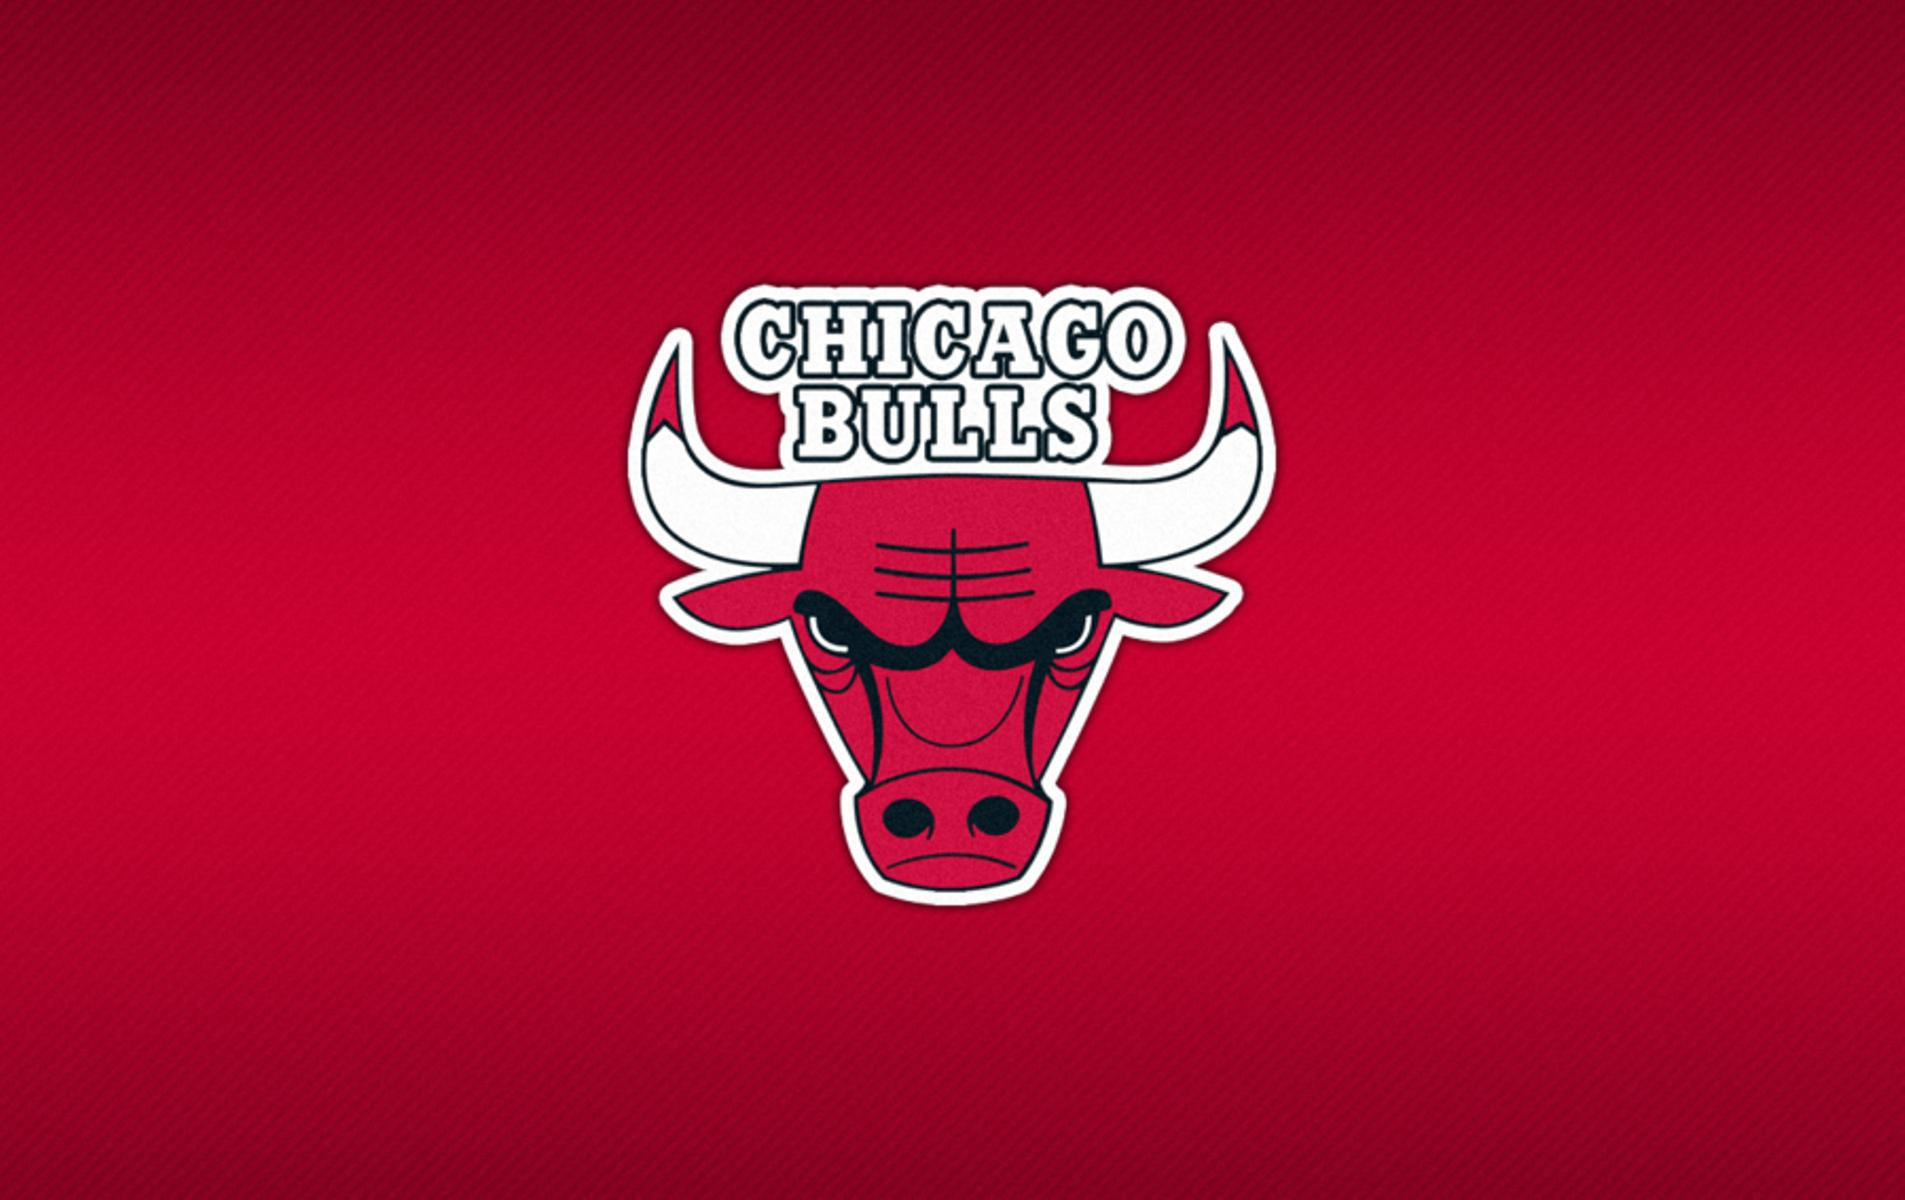 Chicago Bulls Wallpapers HD 2017 - Wallpaper Cave